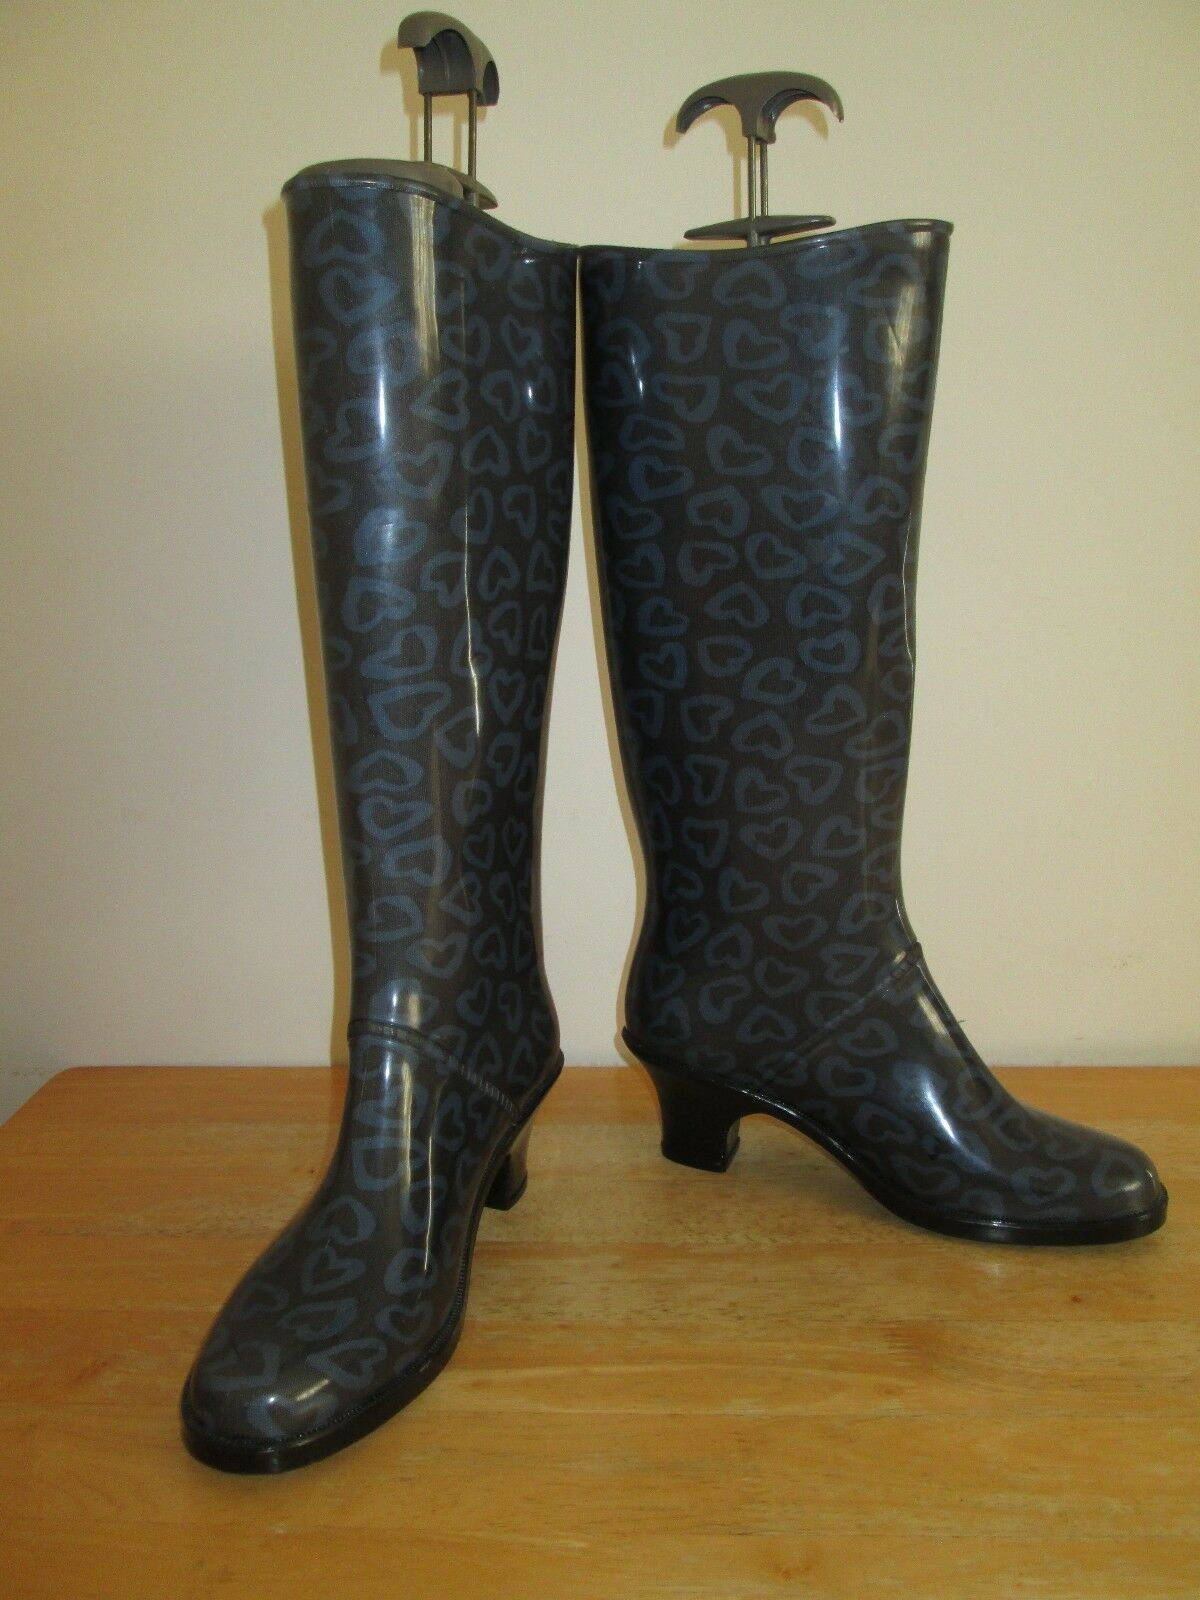 Marc Jacobs Womens Rubber Wellington Rain Boots With Heels UK Size 6